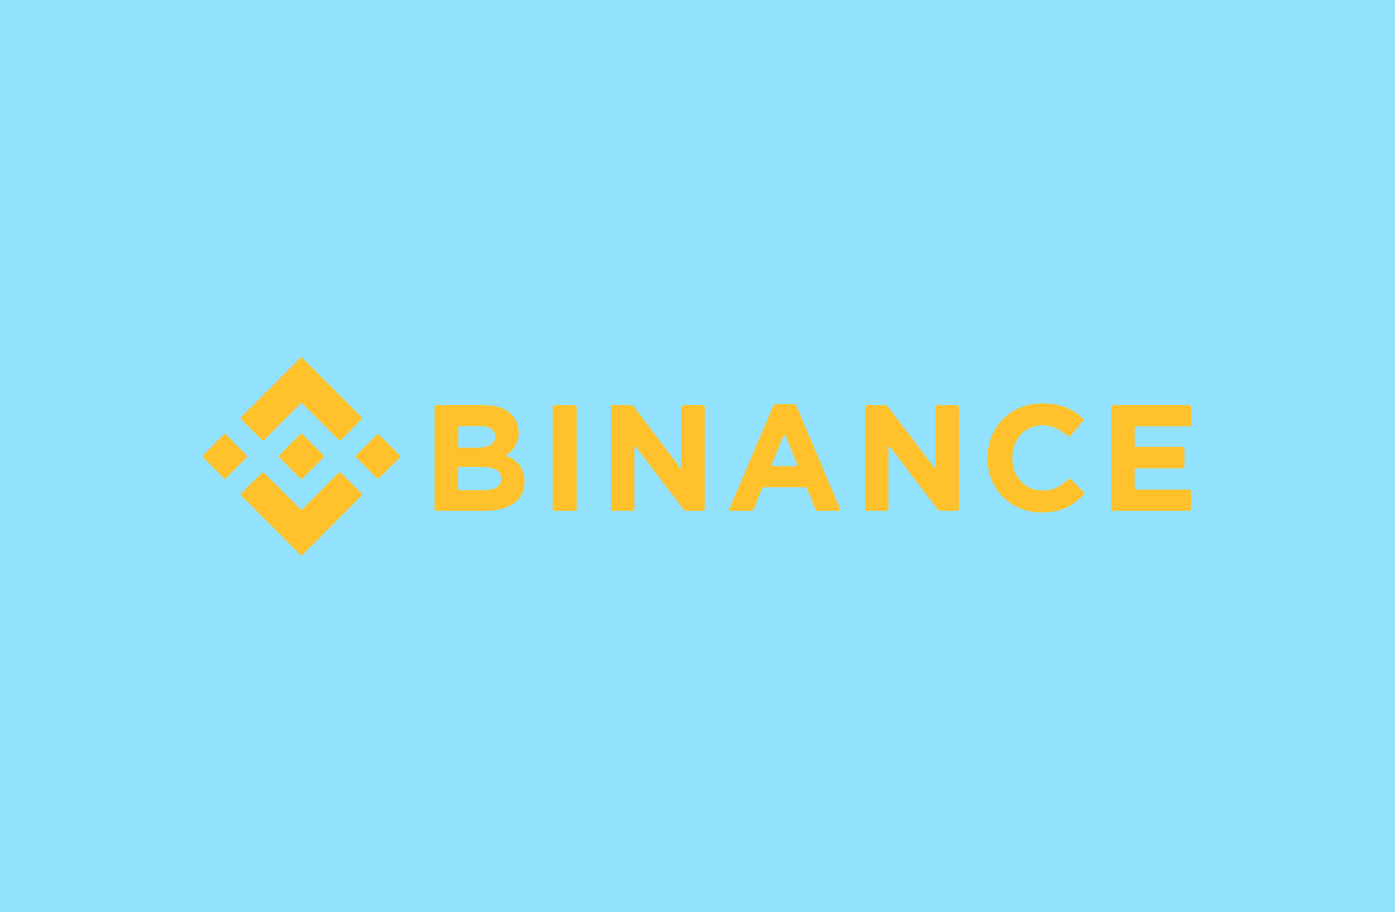 how to buy bitcoin with credit card on binance